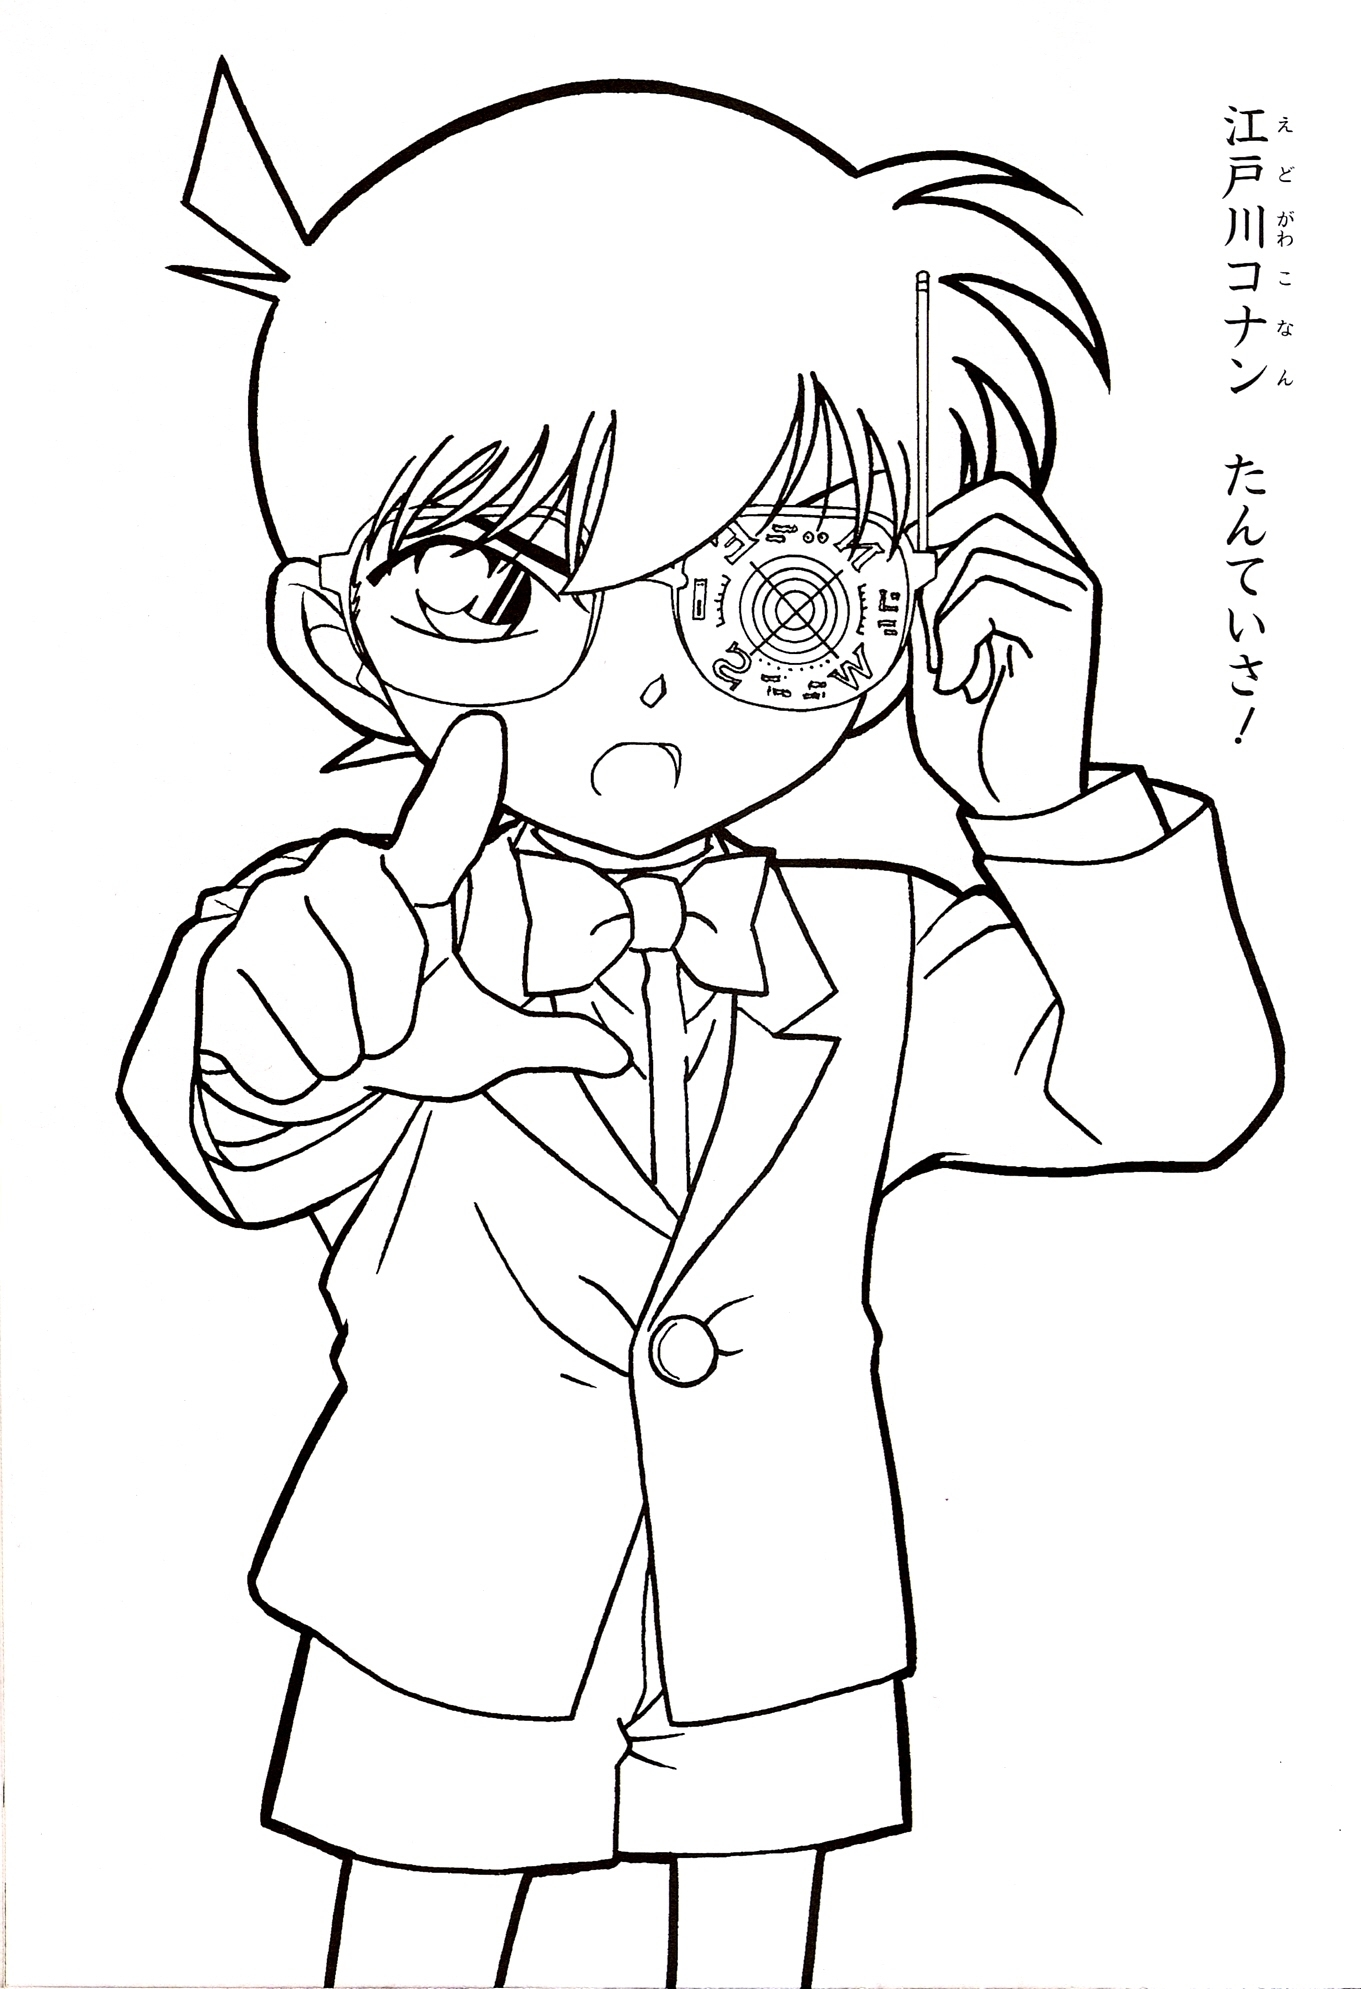 Detective Coloring Pages Detective Conan Coloring Pages